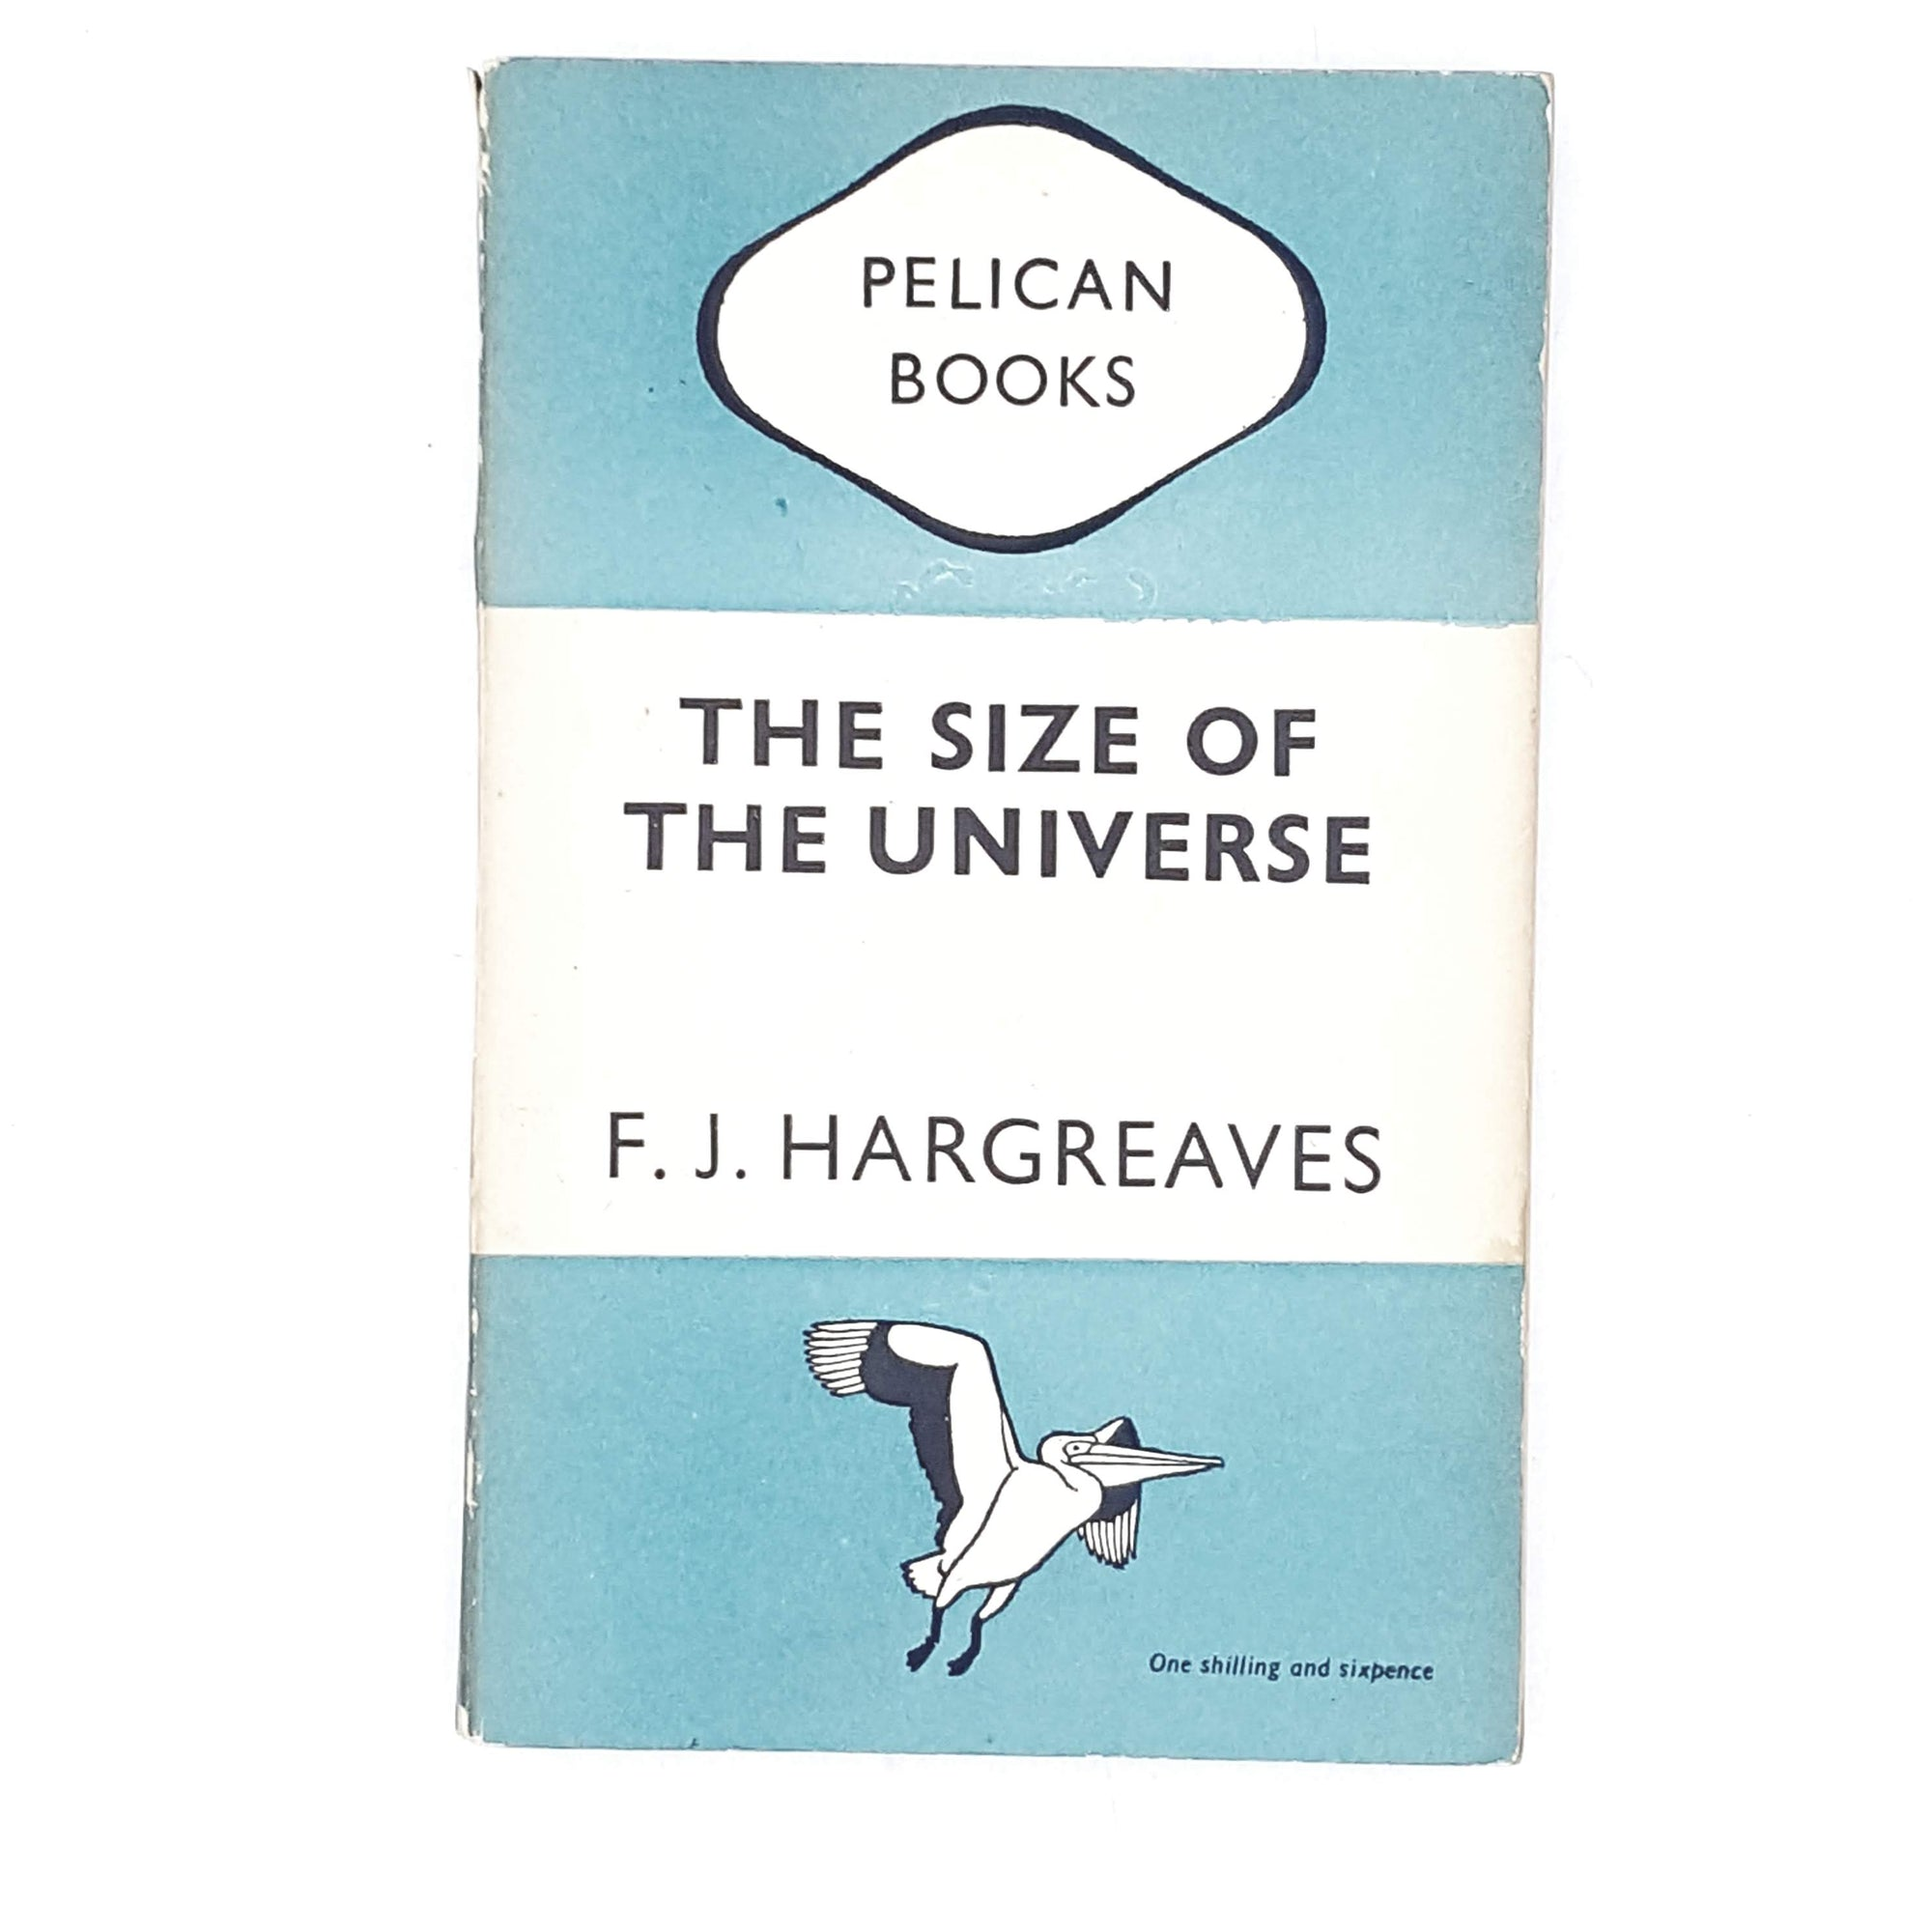 The Size of the Universe by F. J. Hargreaves 1948